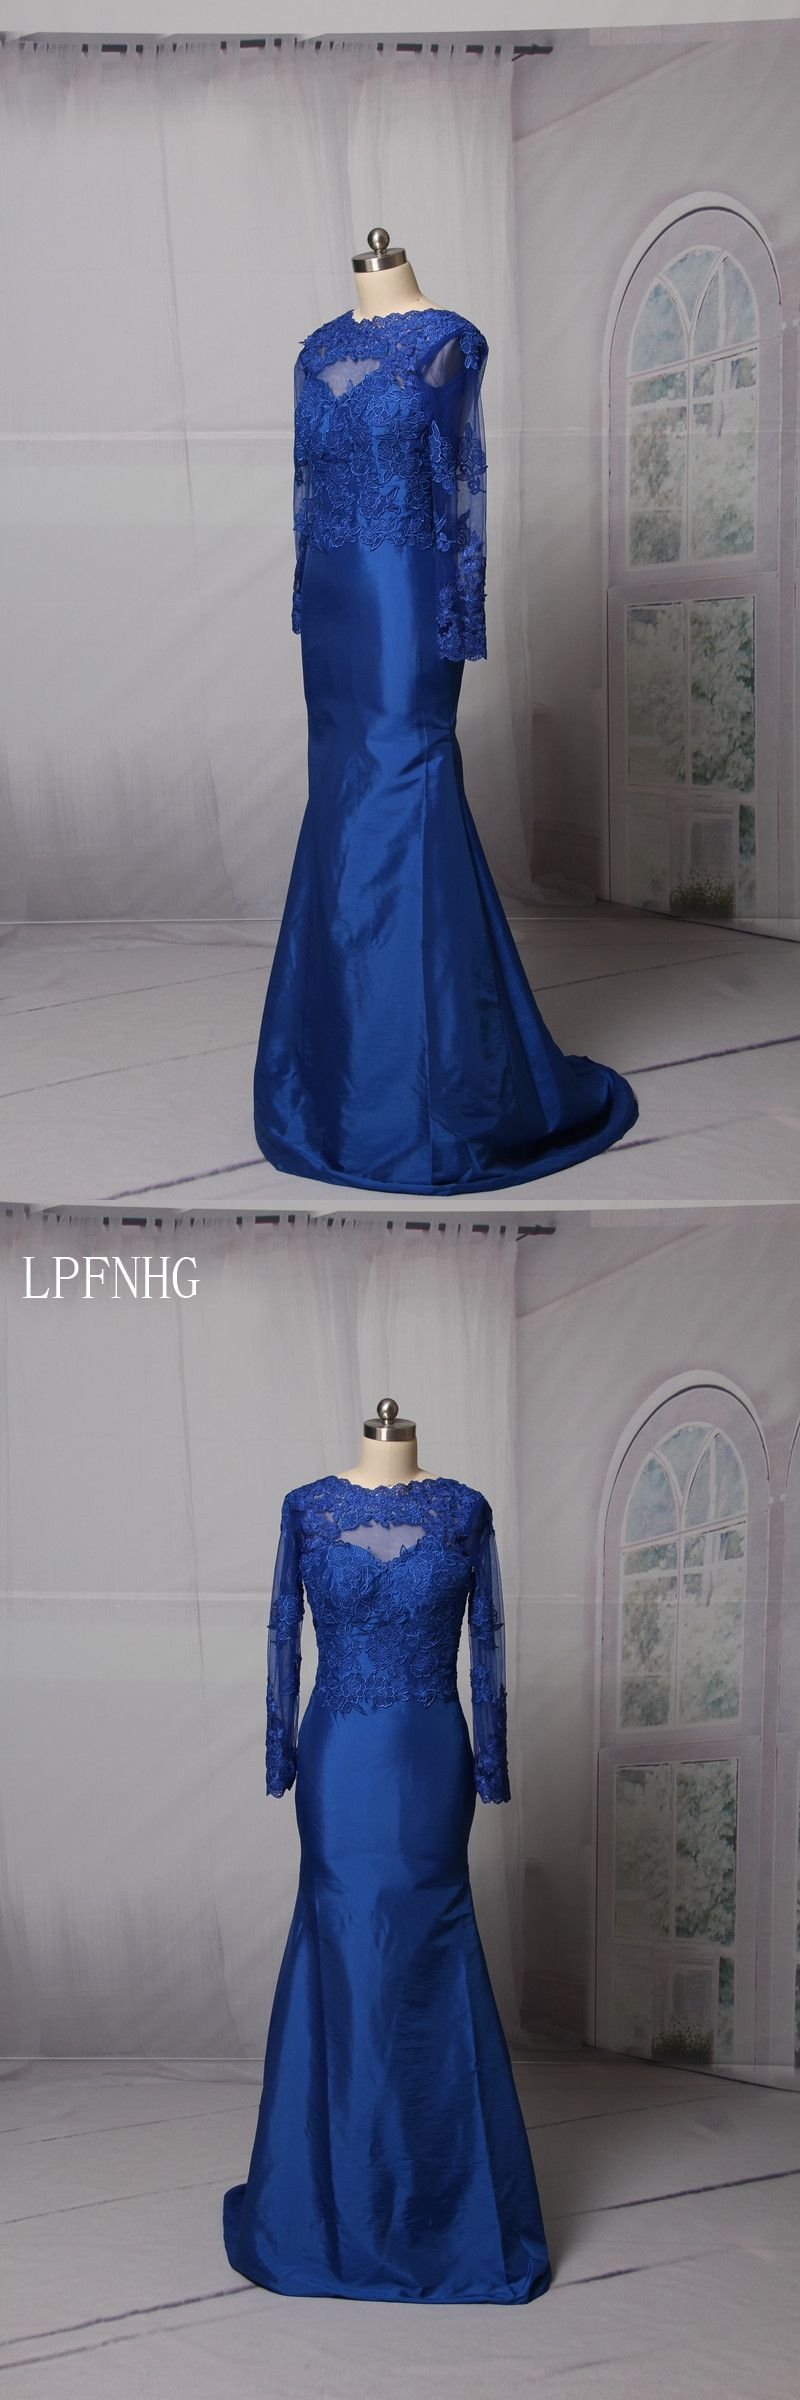 Royal blue prom dresses oneck long sleeve backless sweep train